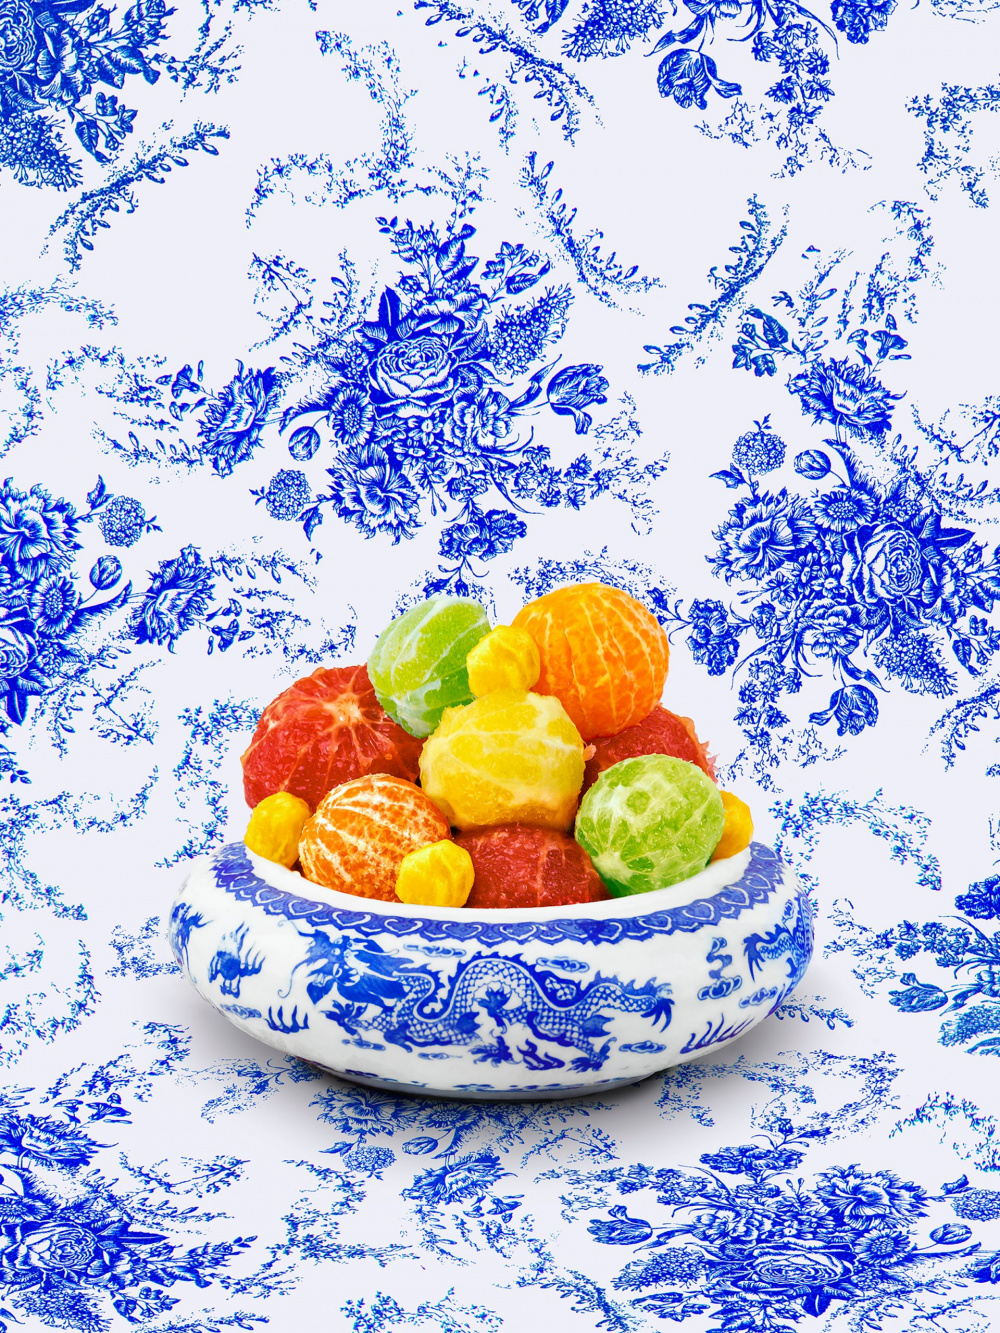 Shellie Zhang, Still Life with Citrus, 2018-2019. Courtesy of the artist.